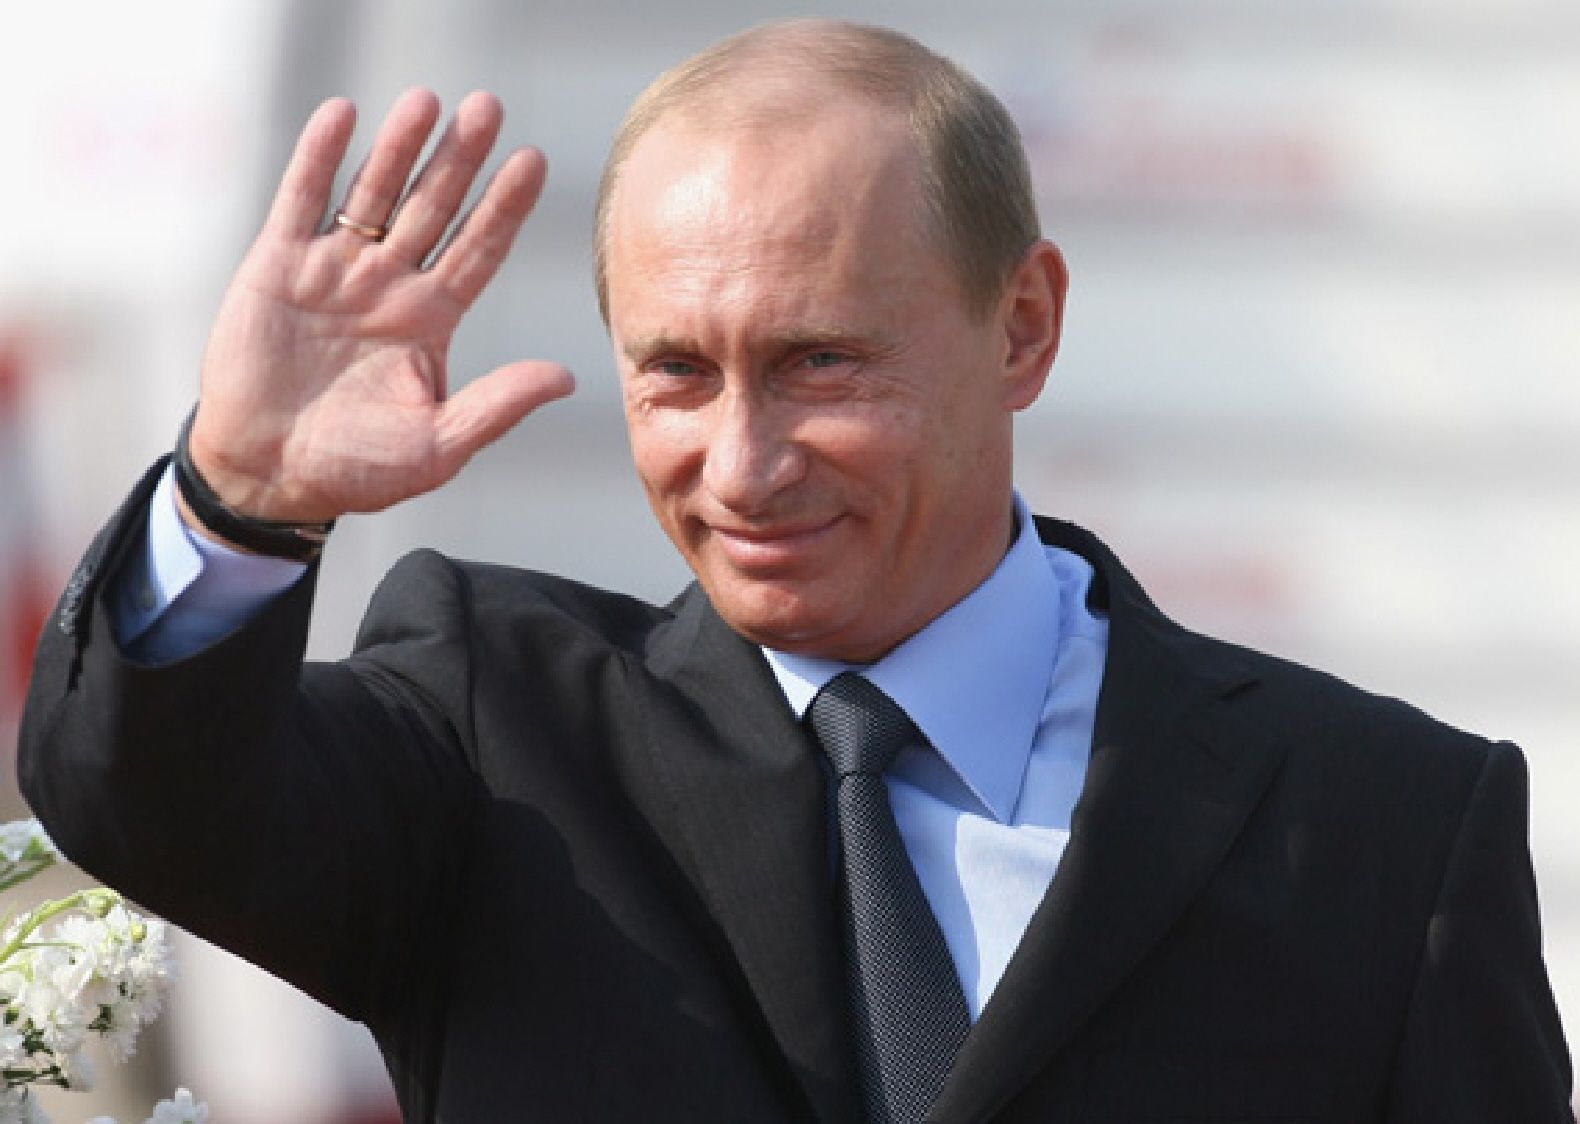 Vladimir Putin suggests US hackers meddled in election ...